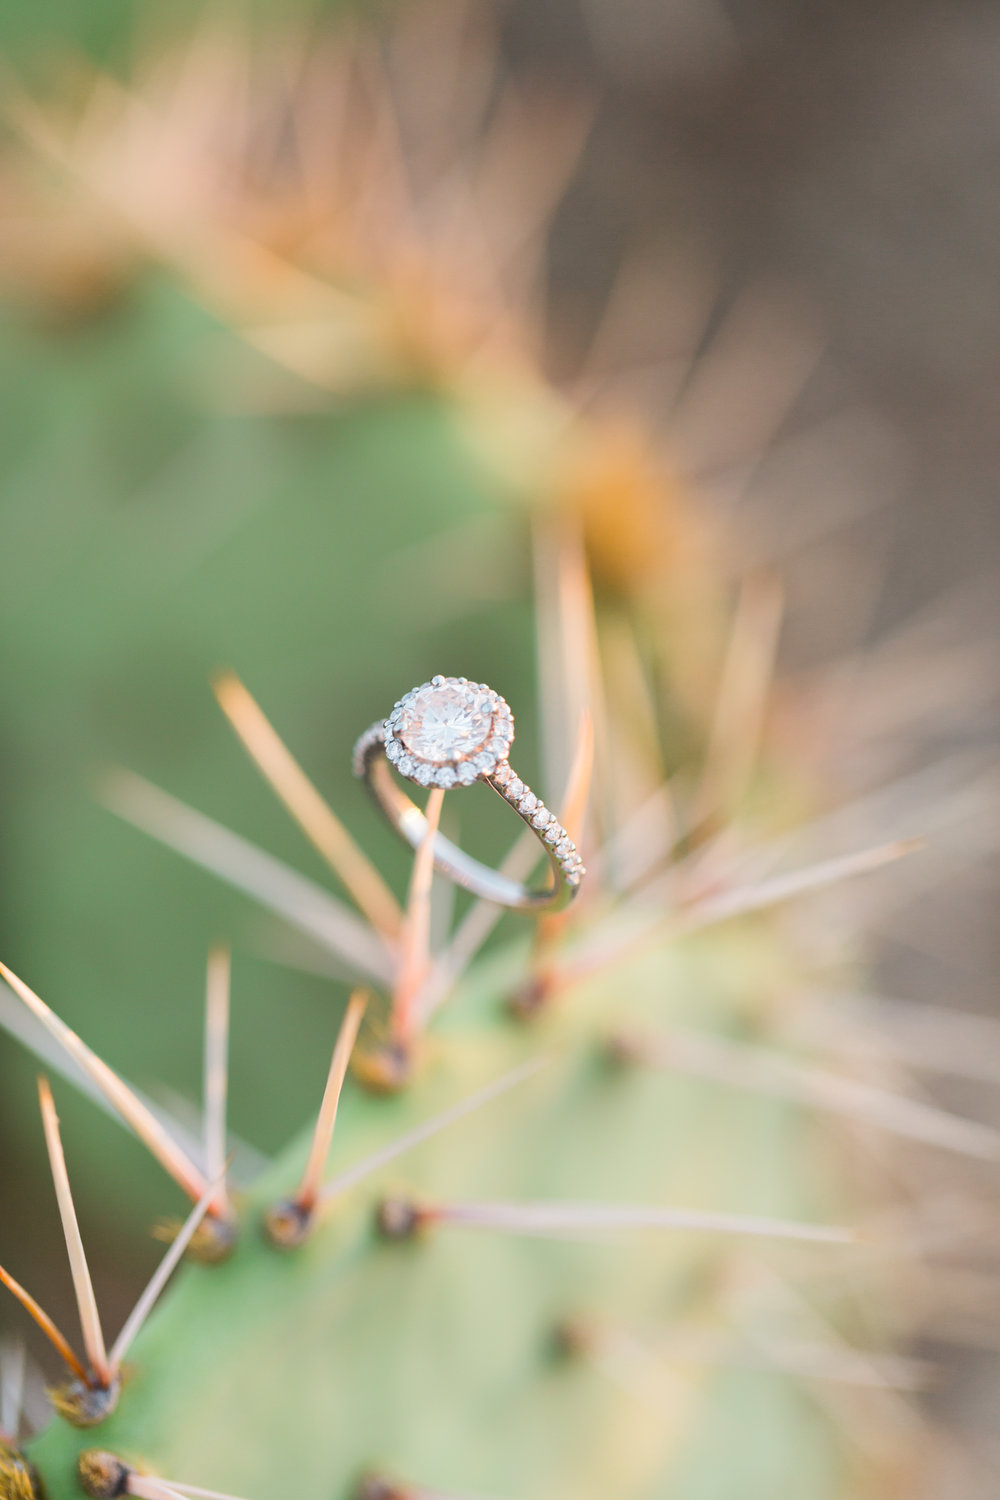 How gorgeous is this halo diamond engagement ring on this cactus? We love ring shots like this!!